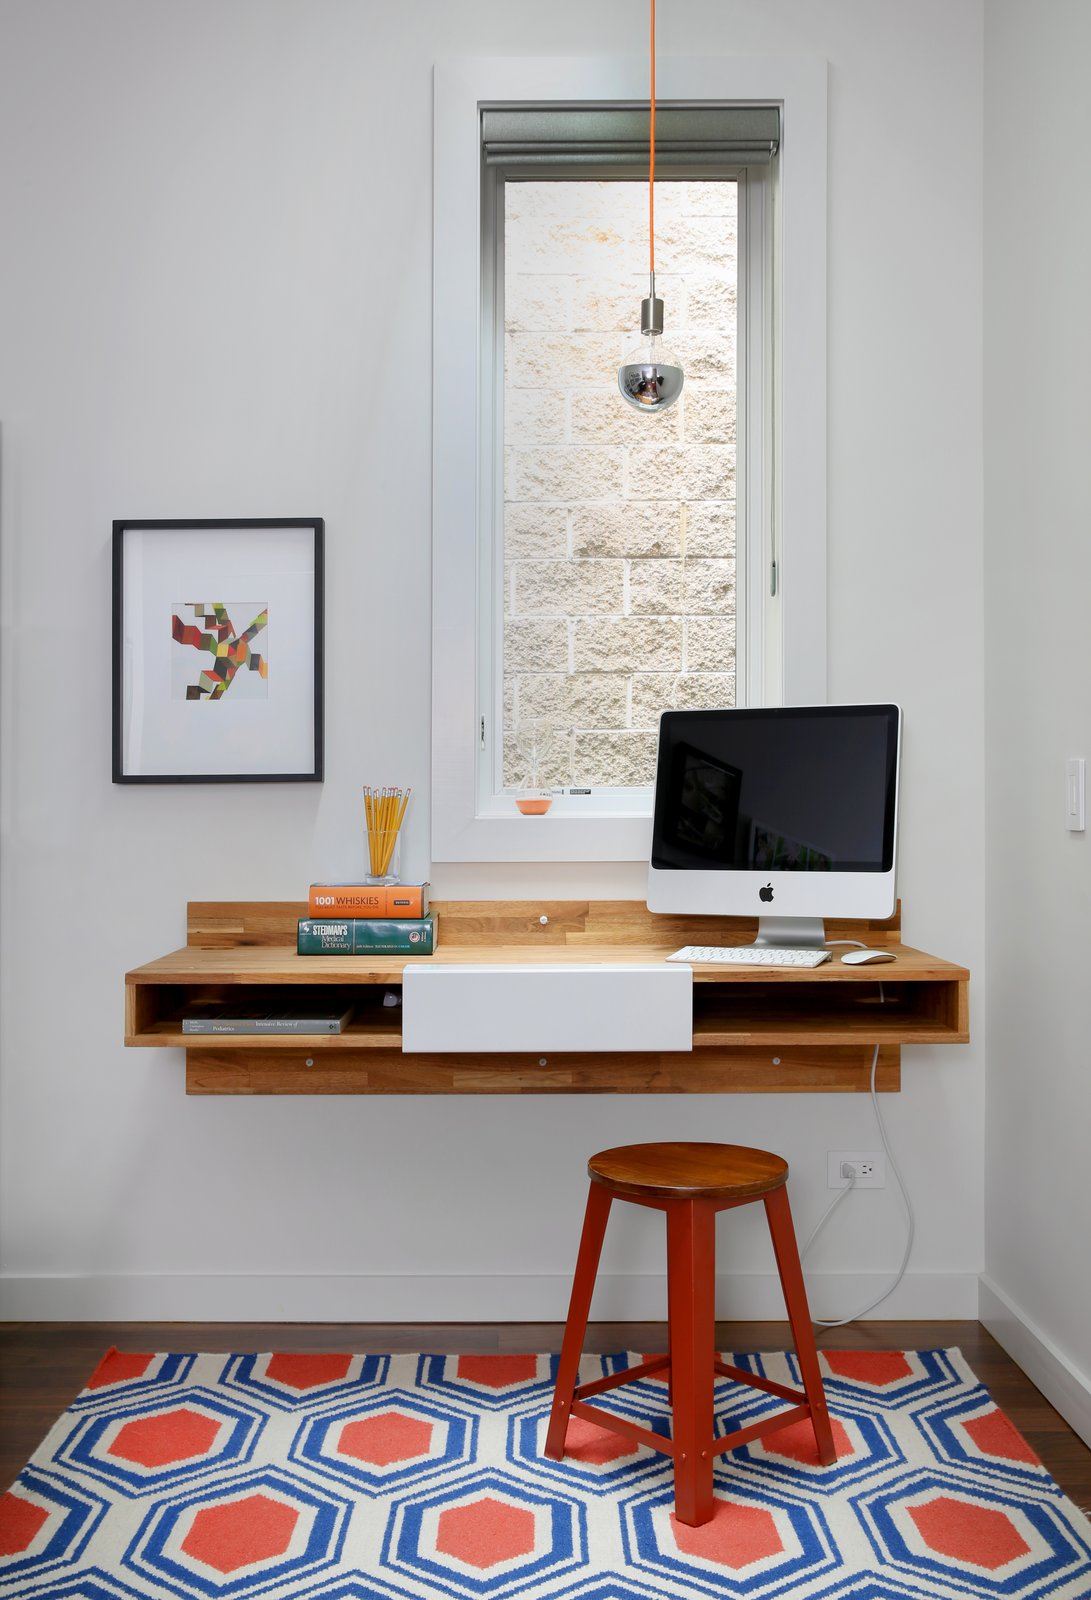 Office, Study Room Type, Desk, Rug Floor, and Dark Hardwood Floor A Mash Studio Wall-Mounted desk offers a place to study. The rug is from One King's Lane and a SoCo Modern Socket pendant illuminates the room.  Photo 2 of 11 in 10 Essential Tips For Creating a Hardworking Home Office